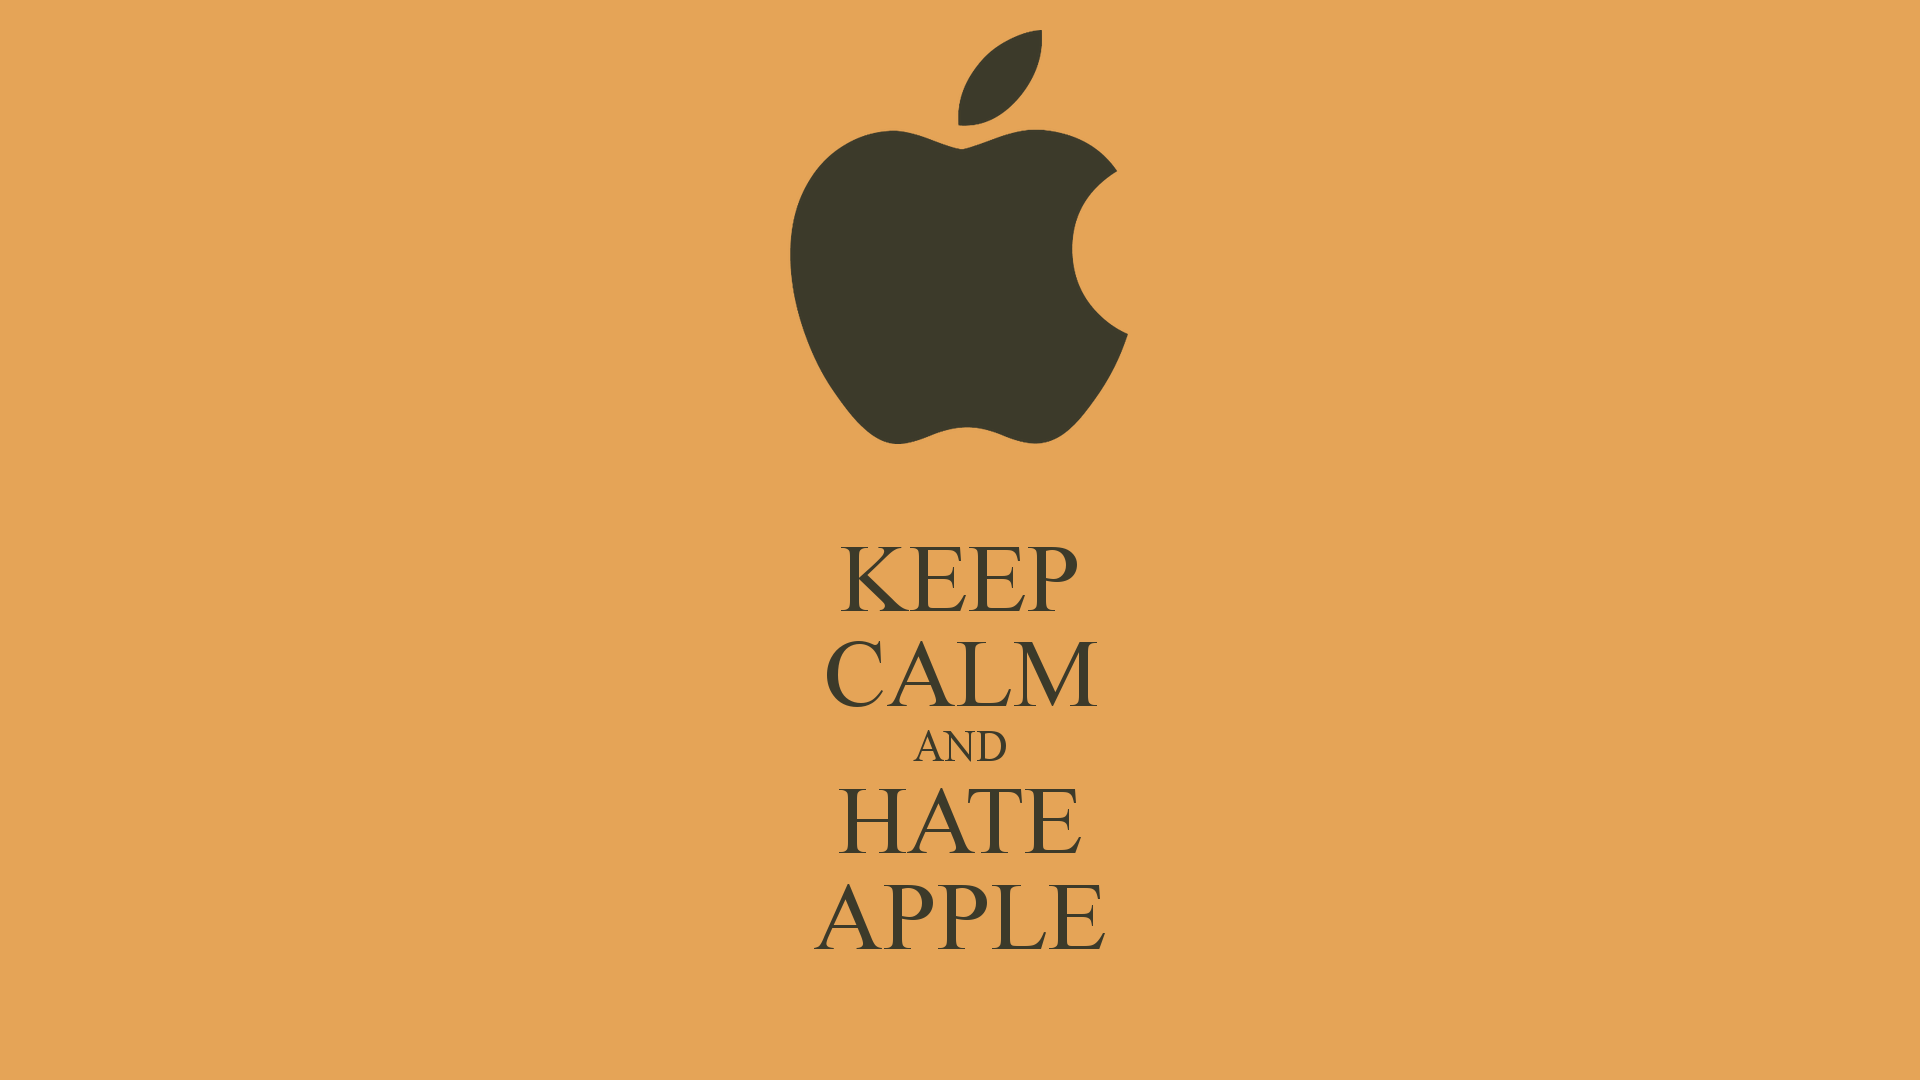 keep-calm-and-hate-apple-109